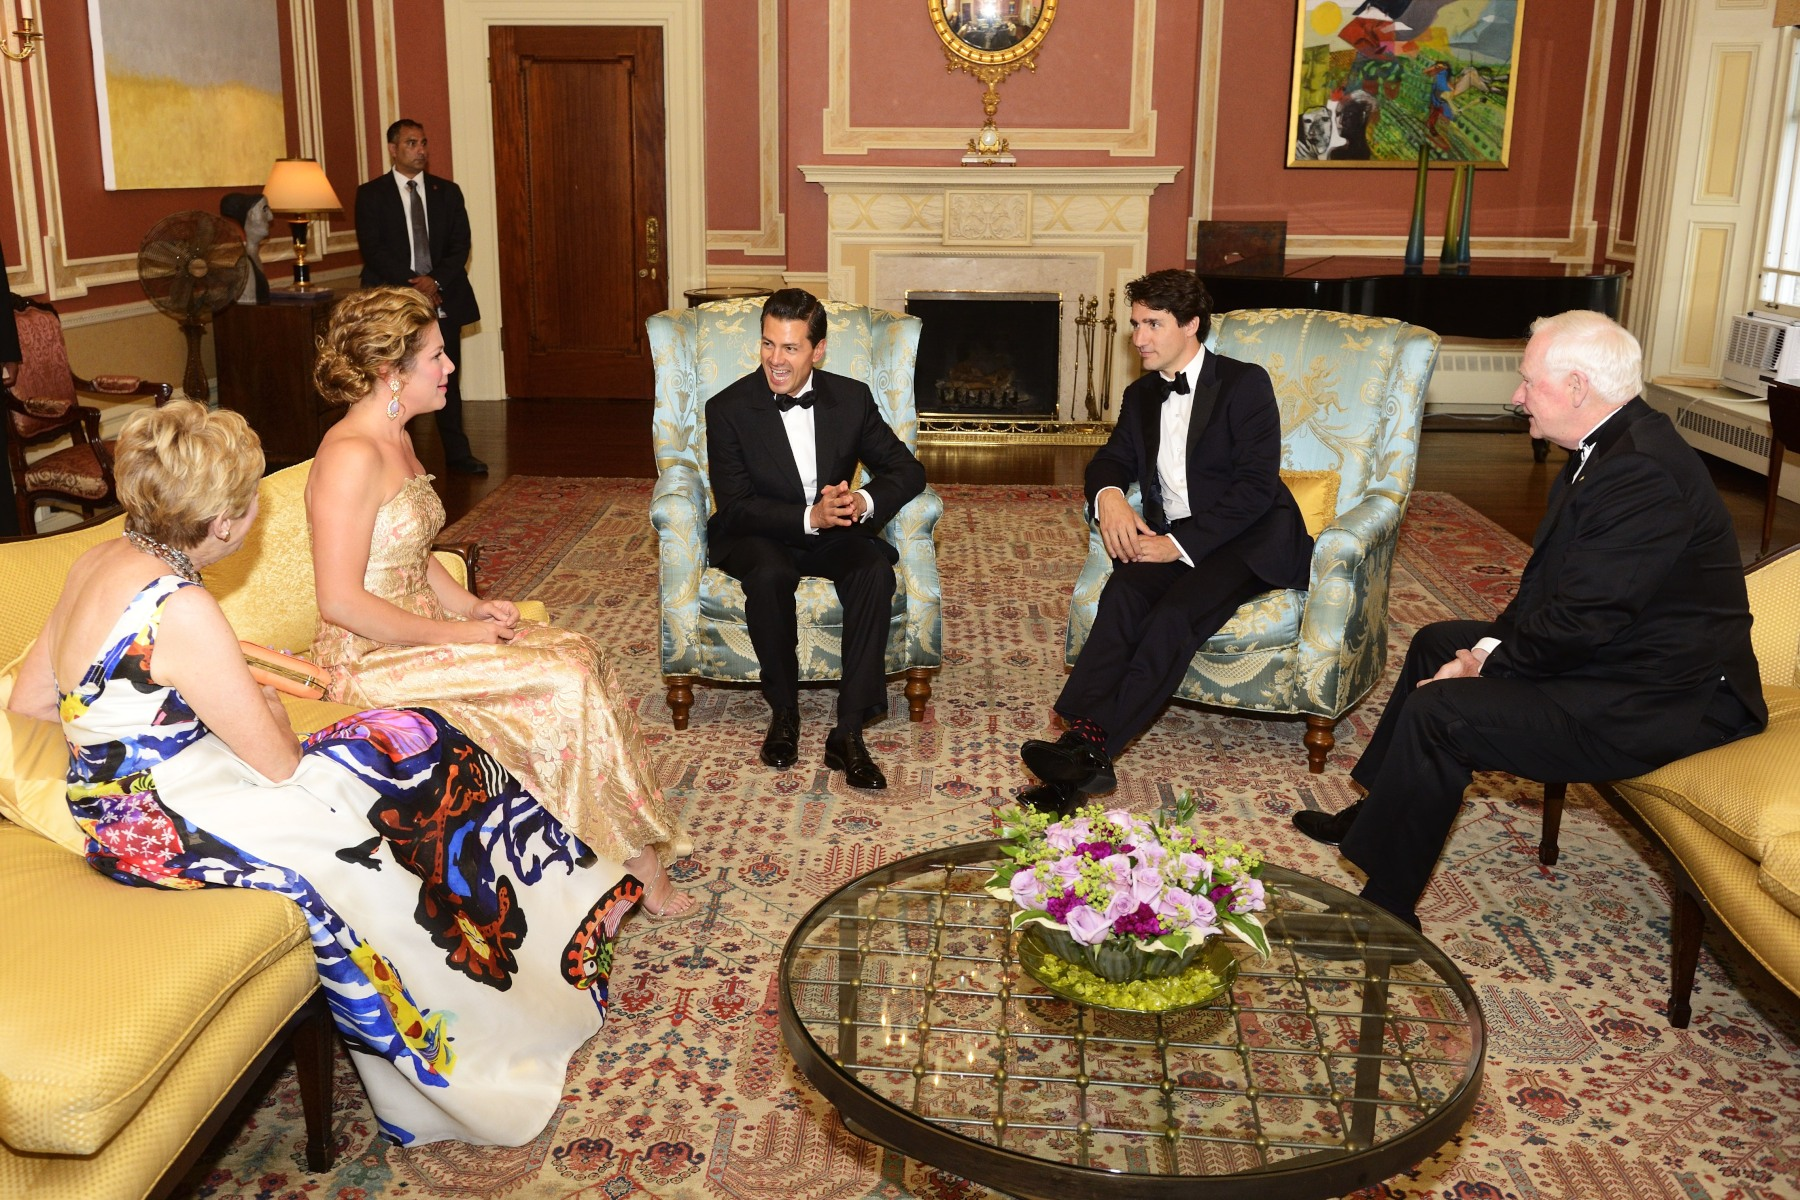 Before the State dinner hosted at Rideau Hall, President Peña Nieto met with Their Excellencies, Prime Minister Justin Trudeau and Mrs. Sophie Grégoire Trudeau.